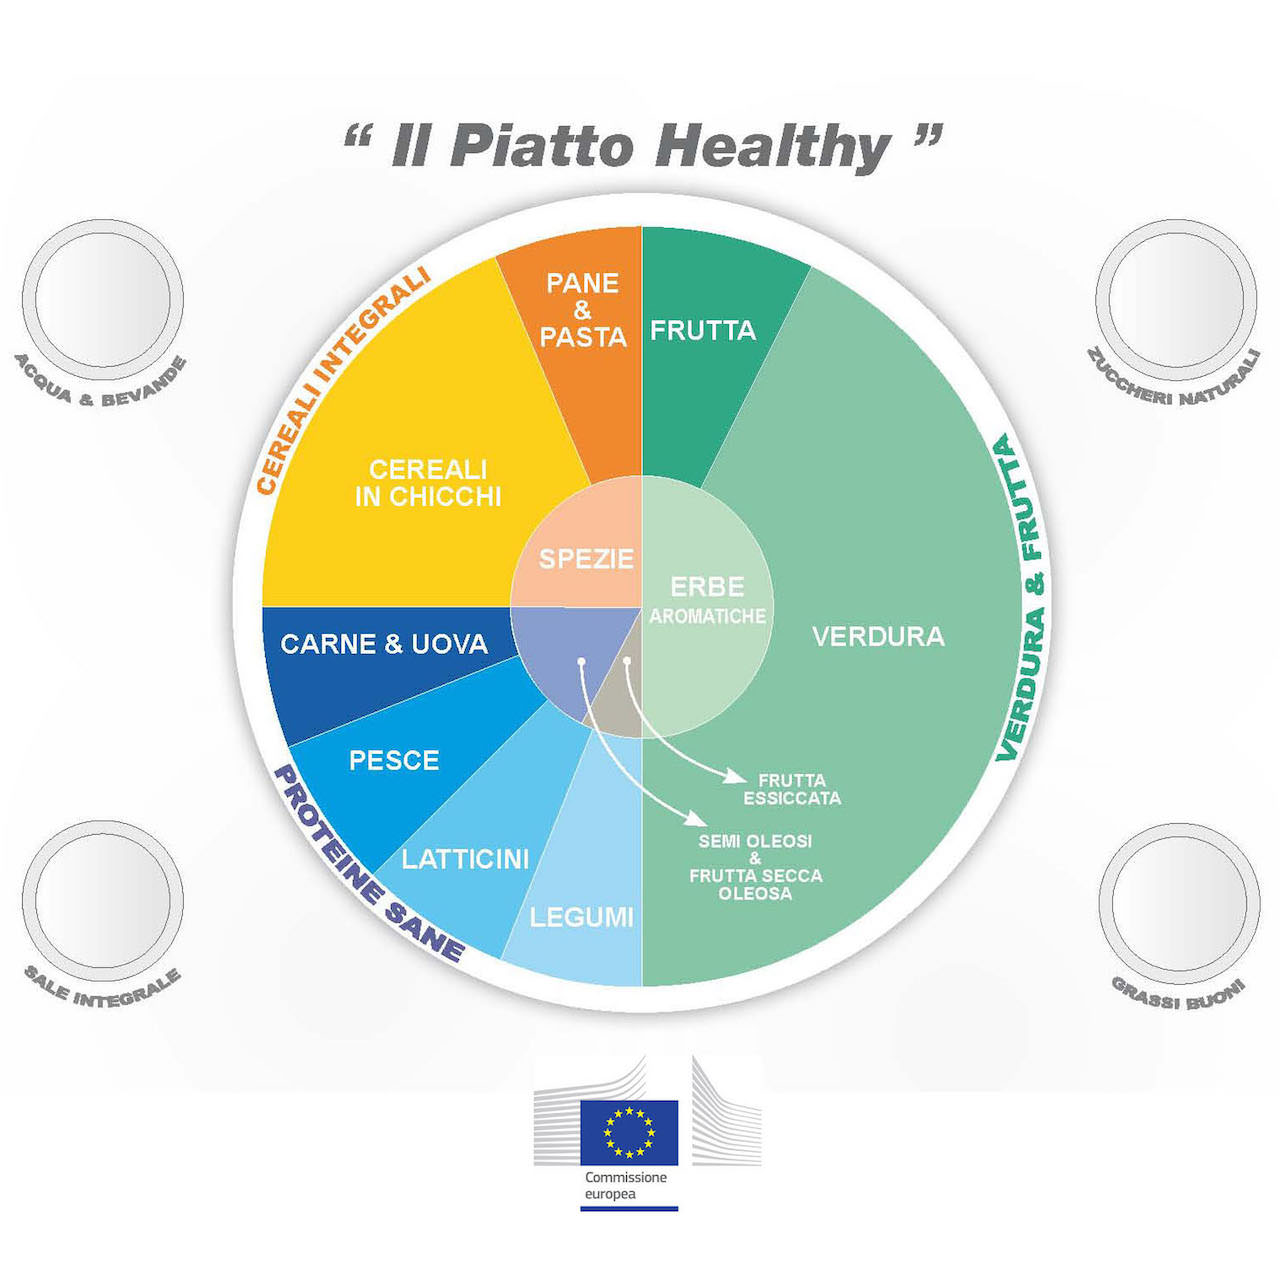 13-COMMISSIONE-EUROPEA-Piatto-Healthy